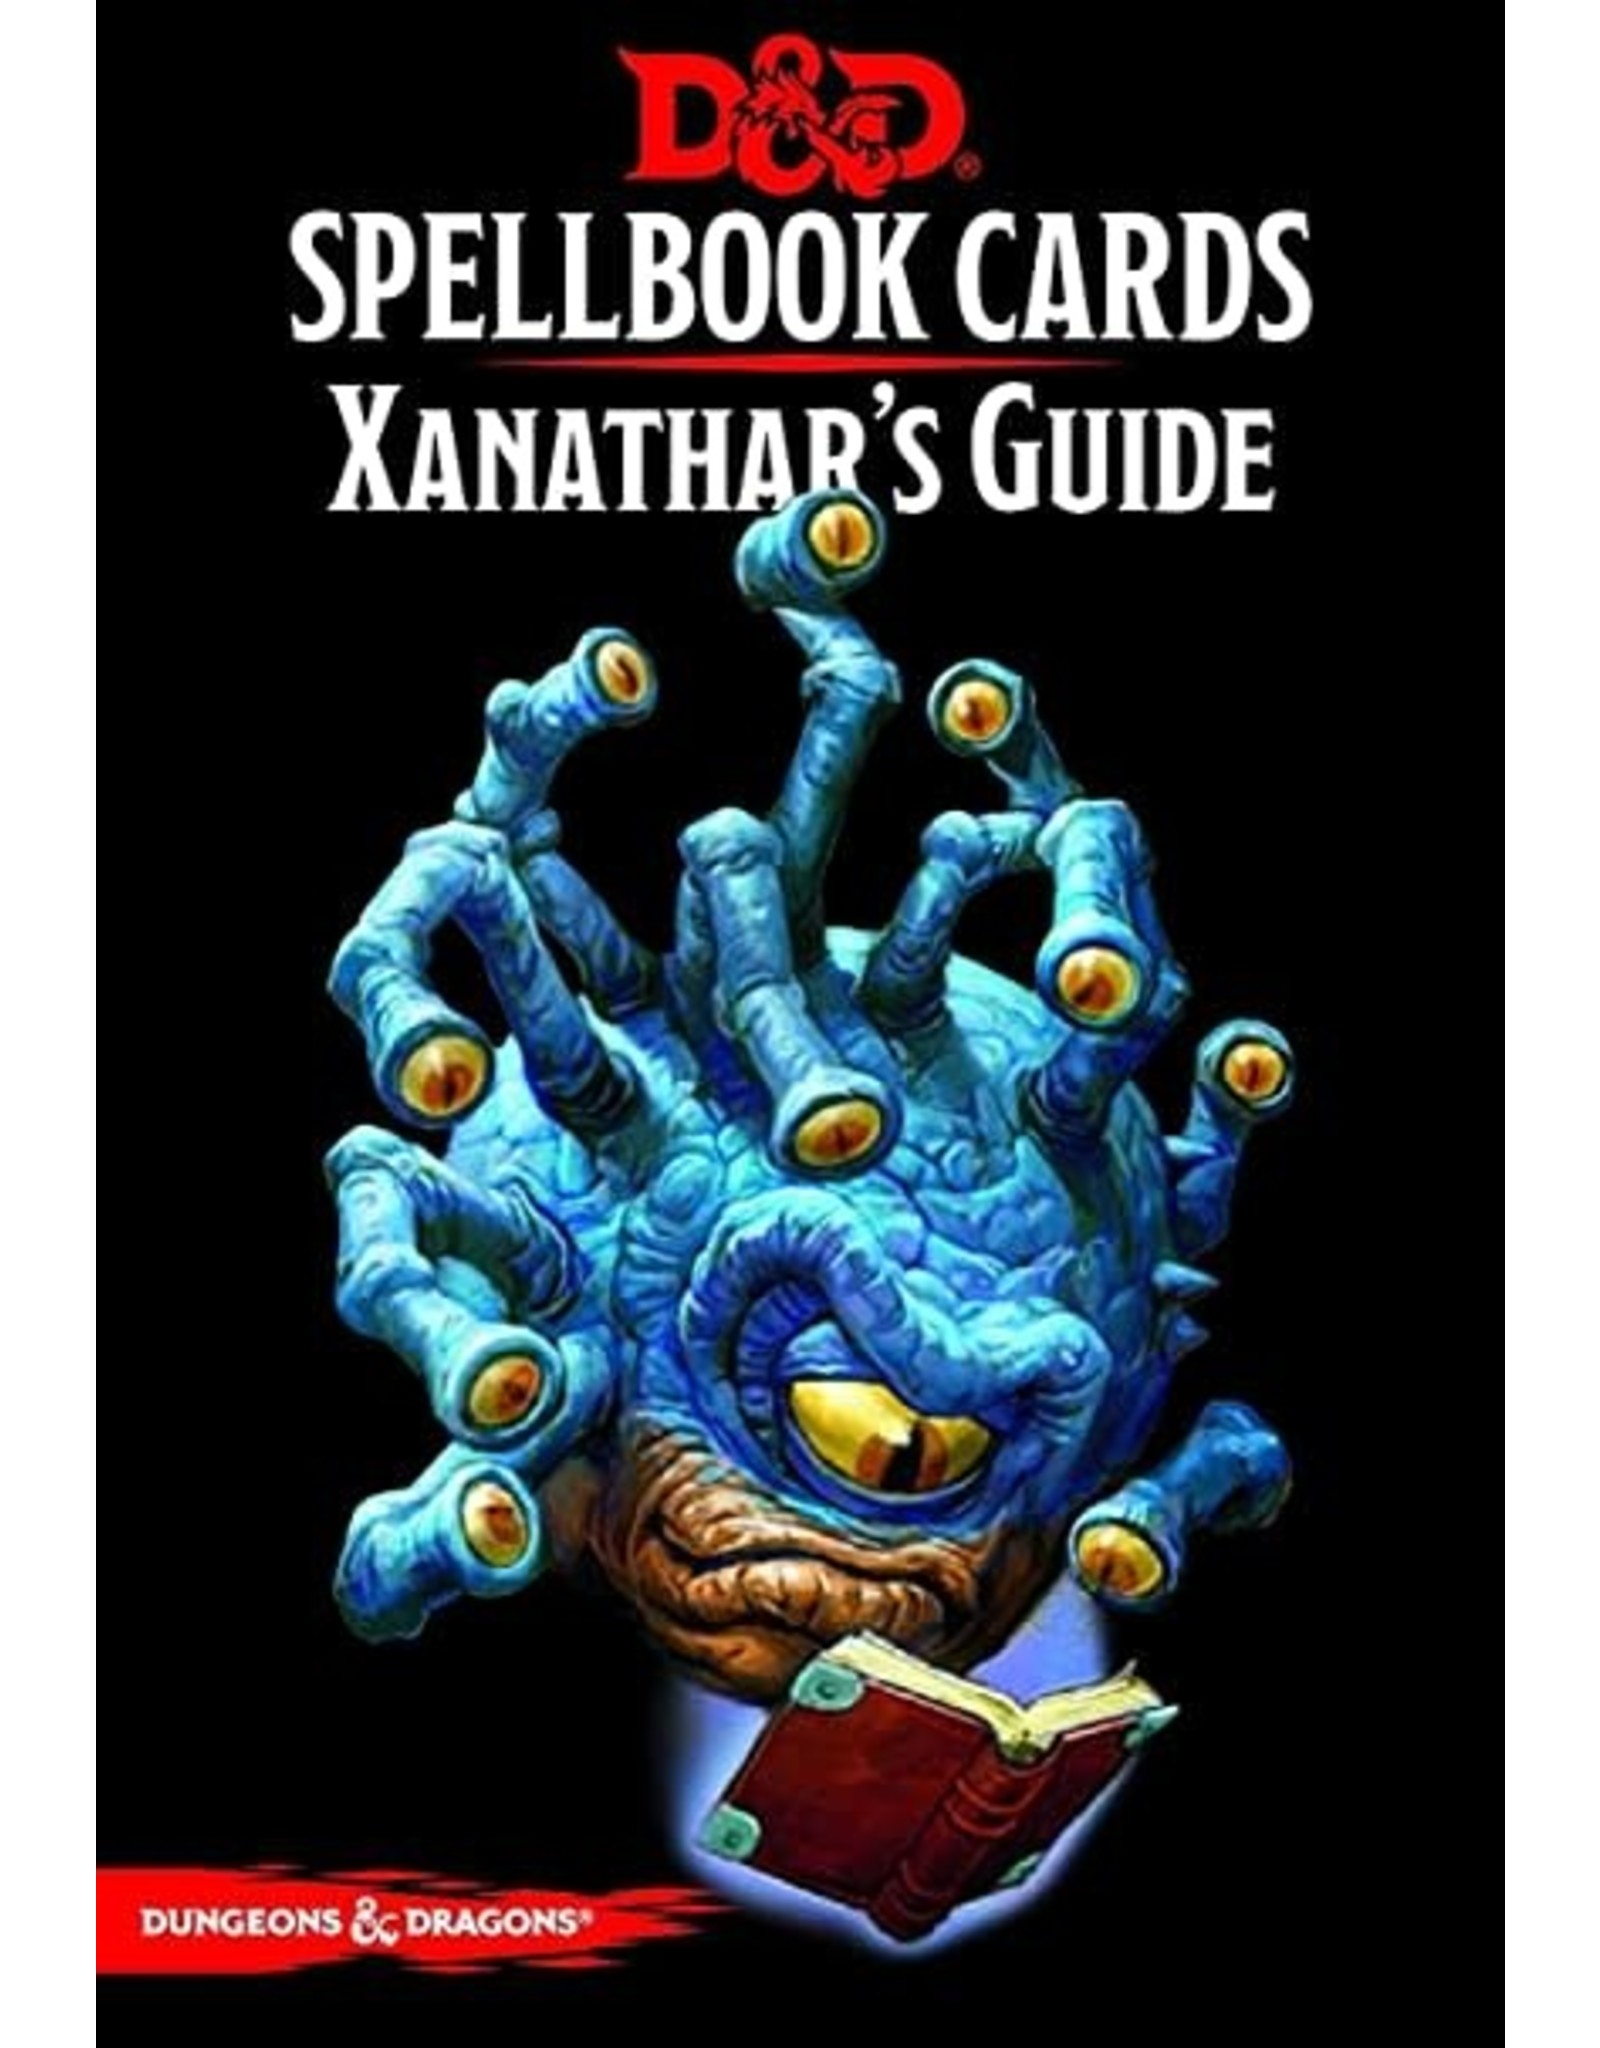 GaleForce9 D&D: Spellbook Cards: Xanathars Guide